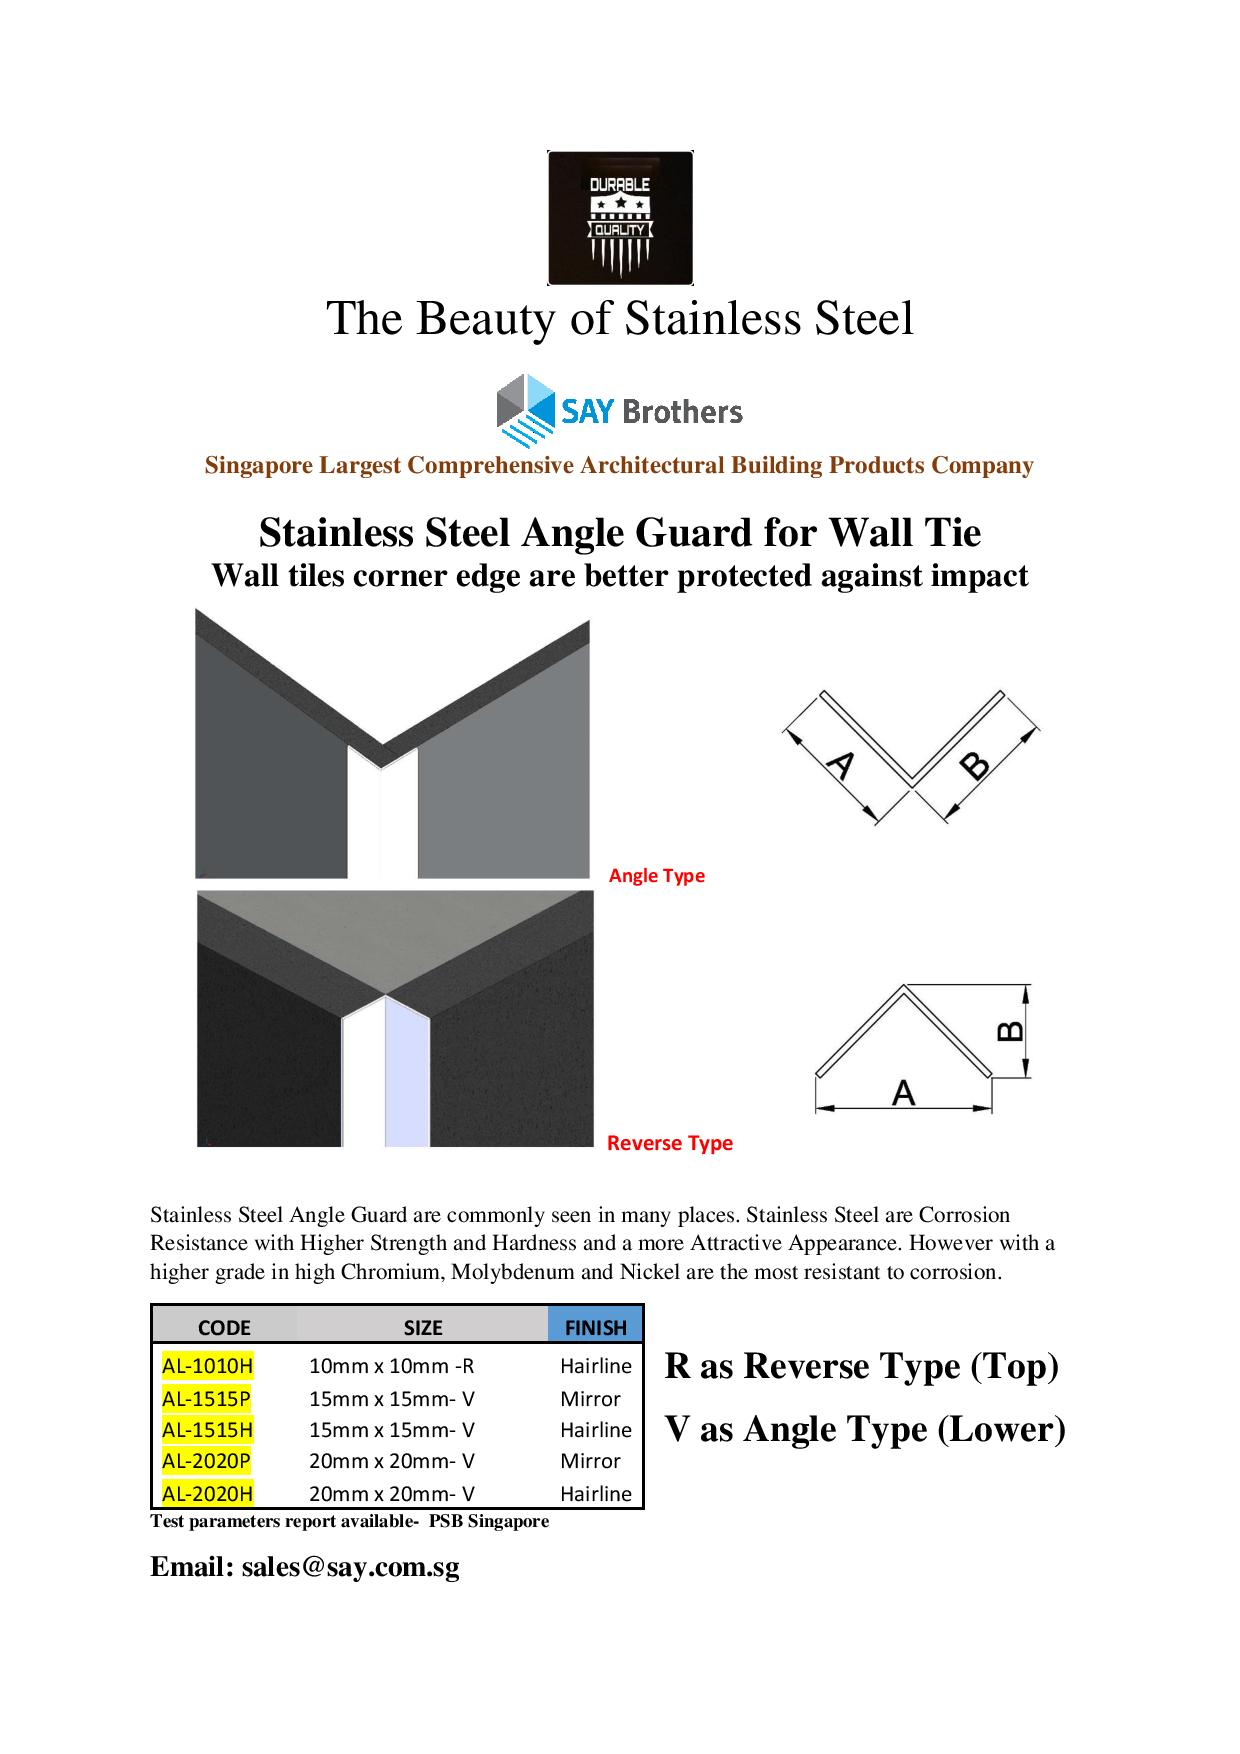 Stainless Steel Angle Guards